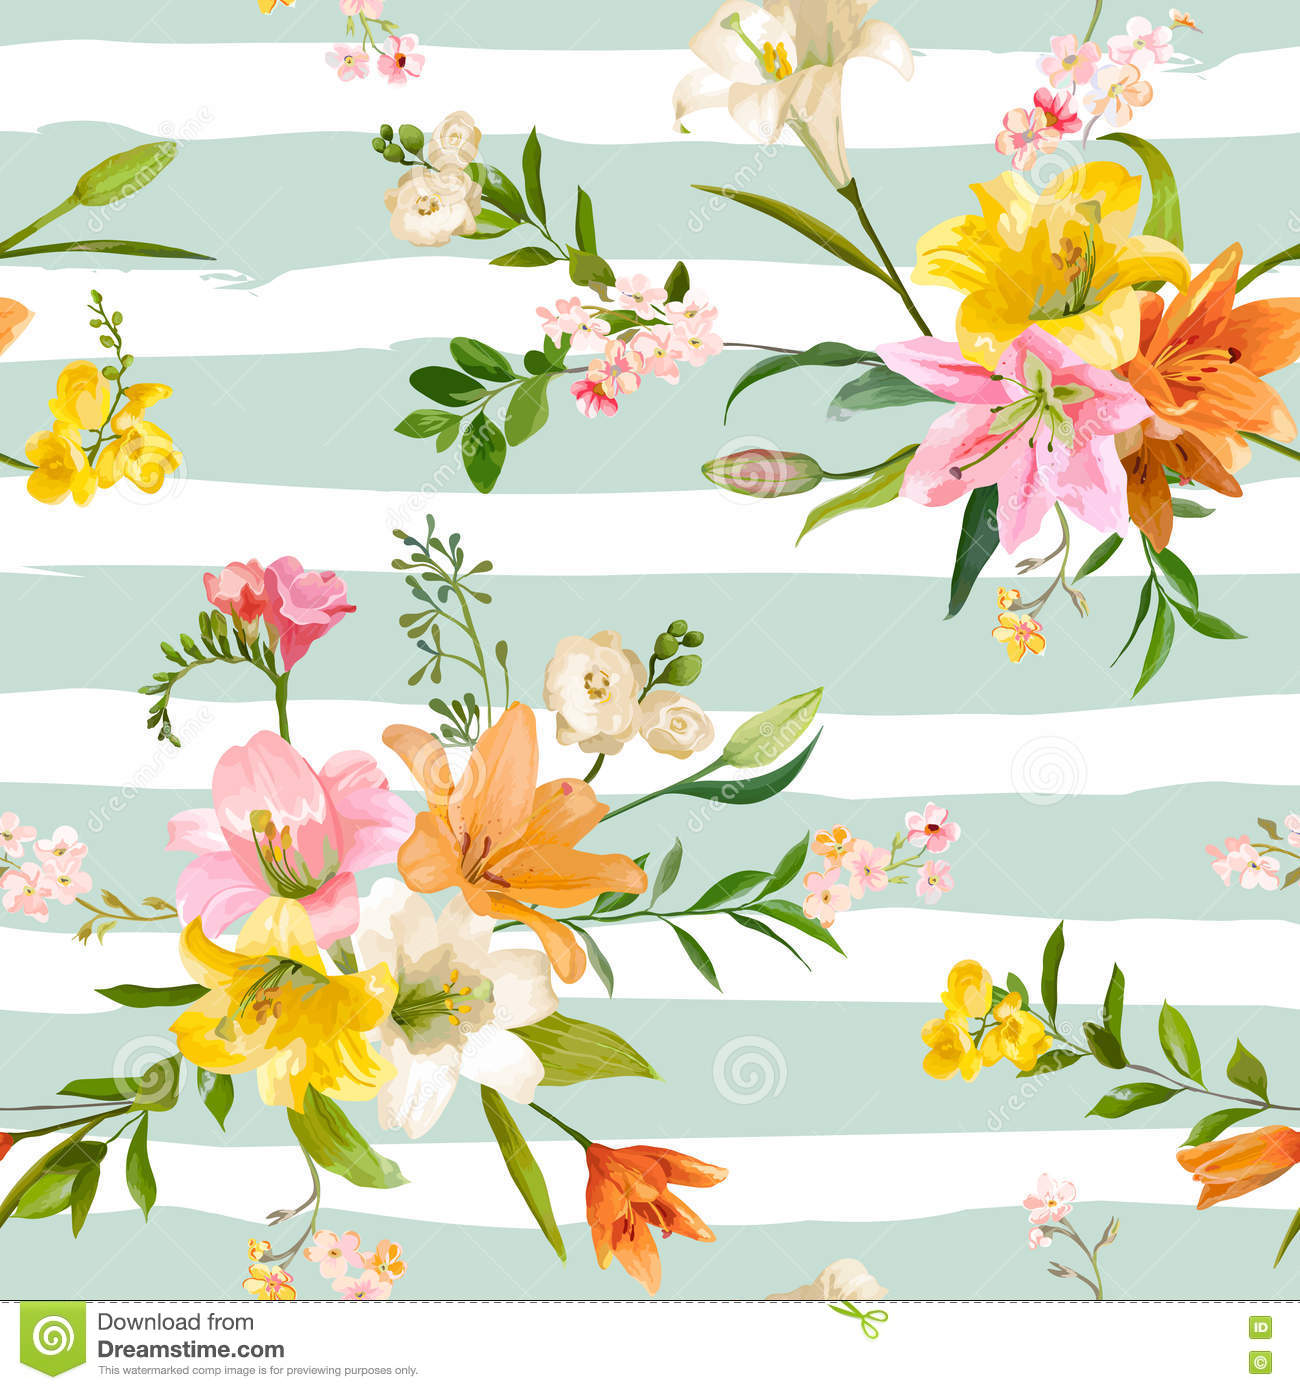 Vintage Spring Flowers Background Seamless Floral Lily Pattern